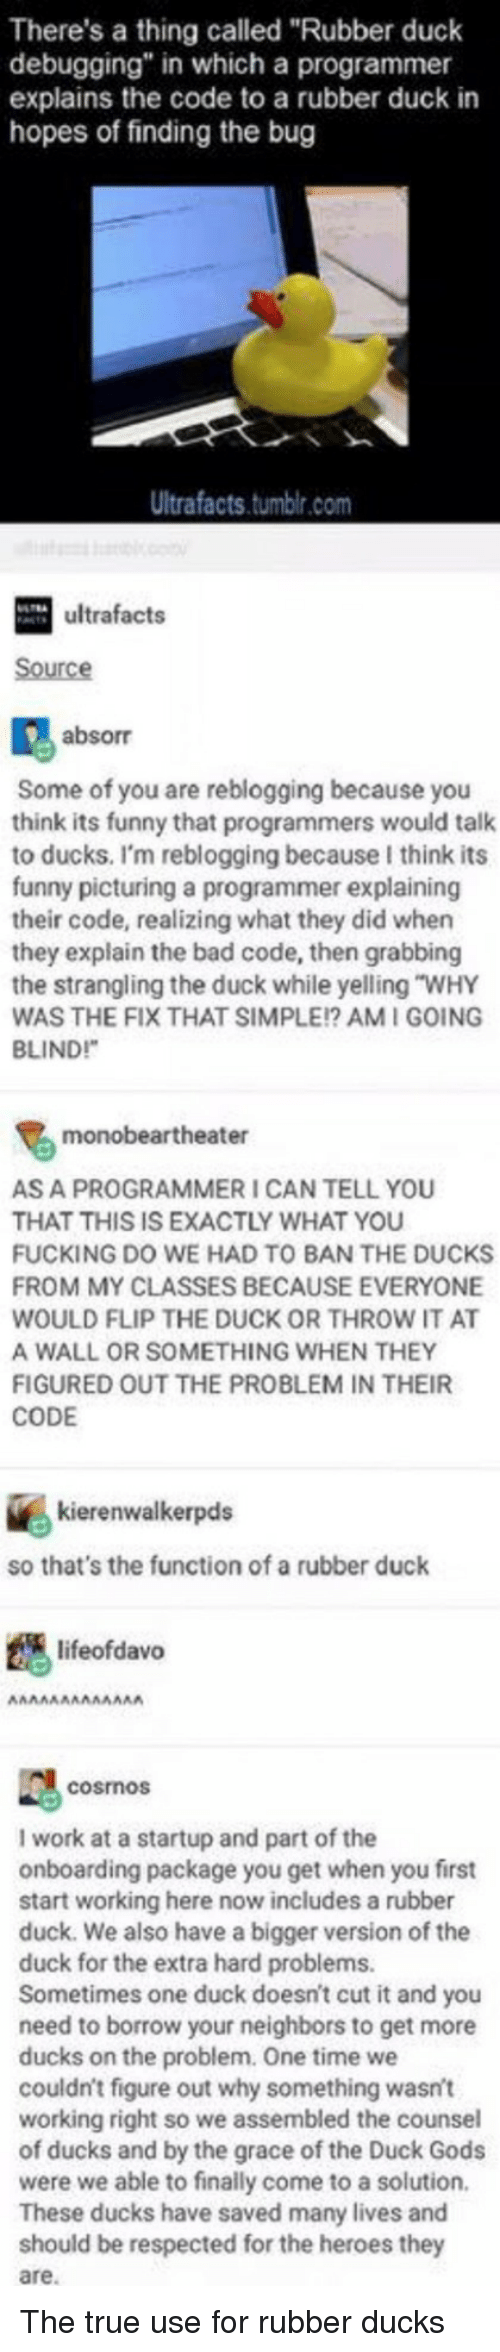 "Bad, Fucking, and Funny: There's a thing called ""Rubber duck  debugging"" in which a programmer  explains the code to a rubber duck in  hopes of finding the bug  Ultrafacts.tumbir.com  ultrafacts  Source  absorr  Some of you are reblogging because you  think its funny that programmers would talk  to ducks. I'm reblogging because I think its  funny picturing a programmer explaining  their code, realizing what they did when  they explain the bad code, then grabbing  the strangling the duck while yelling ""WHY  WAS THE FIX THAT SIMPLE!? AMI GOING  BLINDI  monobeartheater  S A PROGRAMMER I CAN TELL YOU  HAT THIS IS EXACTLY WHAT YOU  FUCKING DO WE HAD TO BAN THE DUCKS  FROM MY CLASSES BECAUSE EVERYONE  WOULD FLIP THE DUCK OR THROW IT AT  A WALL OR SOMETHING WHEN THEY  IGURED OUT THE PROBLEM IN THEIR  CODE  kierenwalkerpds  so that's the function of a rubber duck  lifeofdavo  cosmos  I work at a startup and part of the  onboarding package you get when you first  start working here now includes a rubber  duck. We also have a bigger version of the  duck for the extra hard problems.  metimes one duck doesn't cut it and you  need to borrow your neighbors to get more  ducks on the problem. One time we  couldn't figure out why something wasnt  working right so we assembled the counsel  of ducks and by the grace of the Duck Gods  were we able to finally come to a solution  These ducks have saved many lives and  uld be respected for the heroes they  are. The true use for rubber ducks"